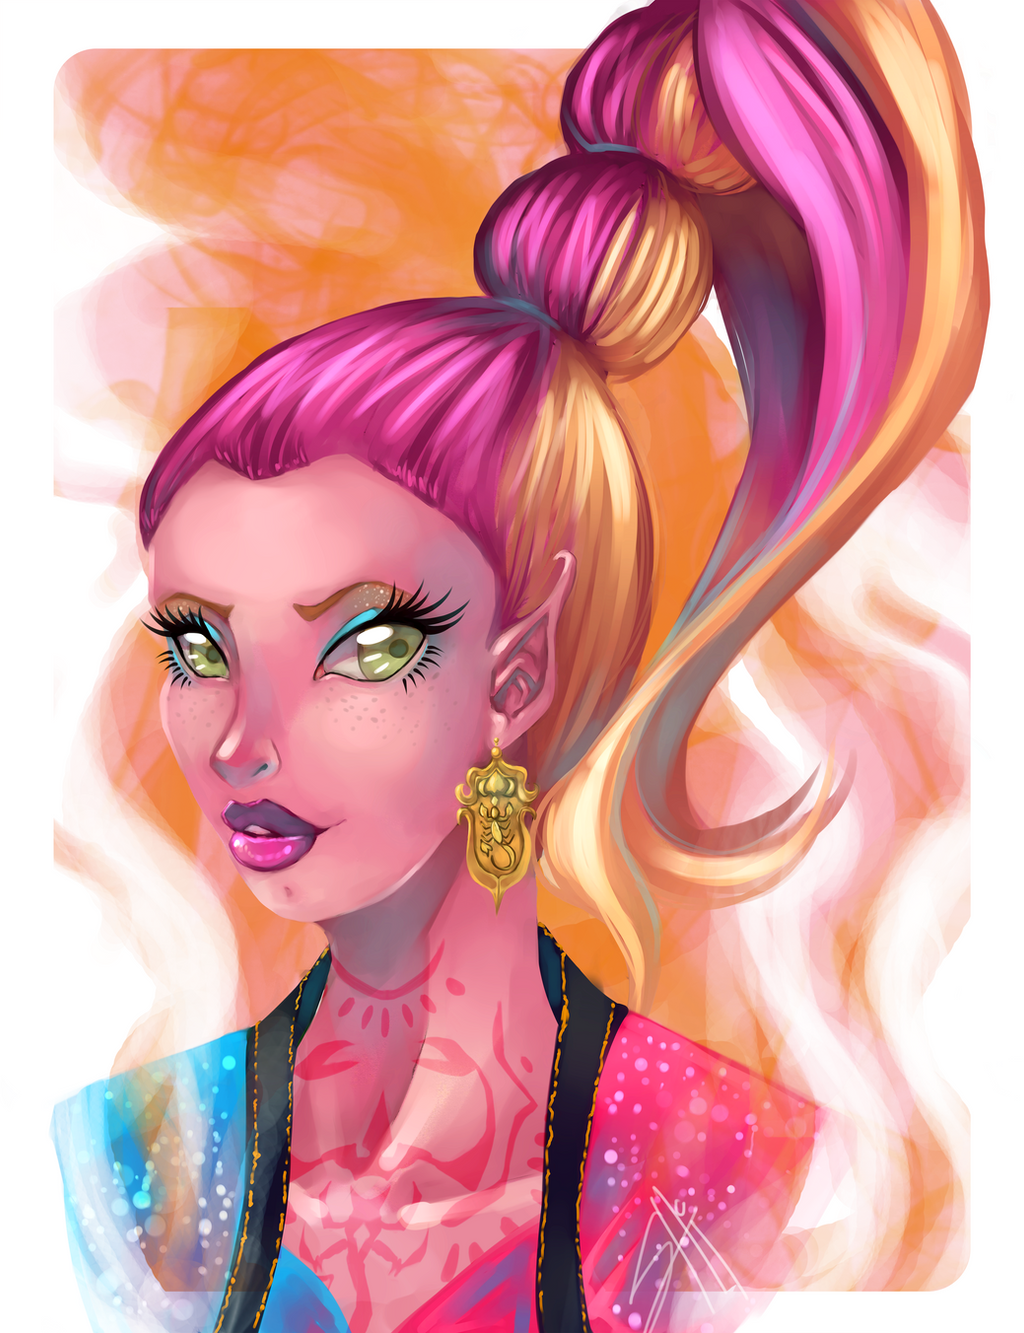 Monster High 13 Wishes By Shichel On Deviantart